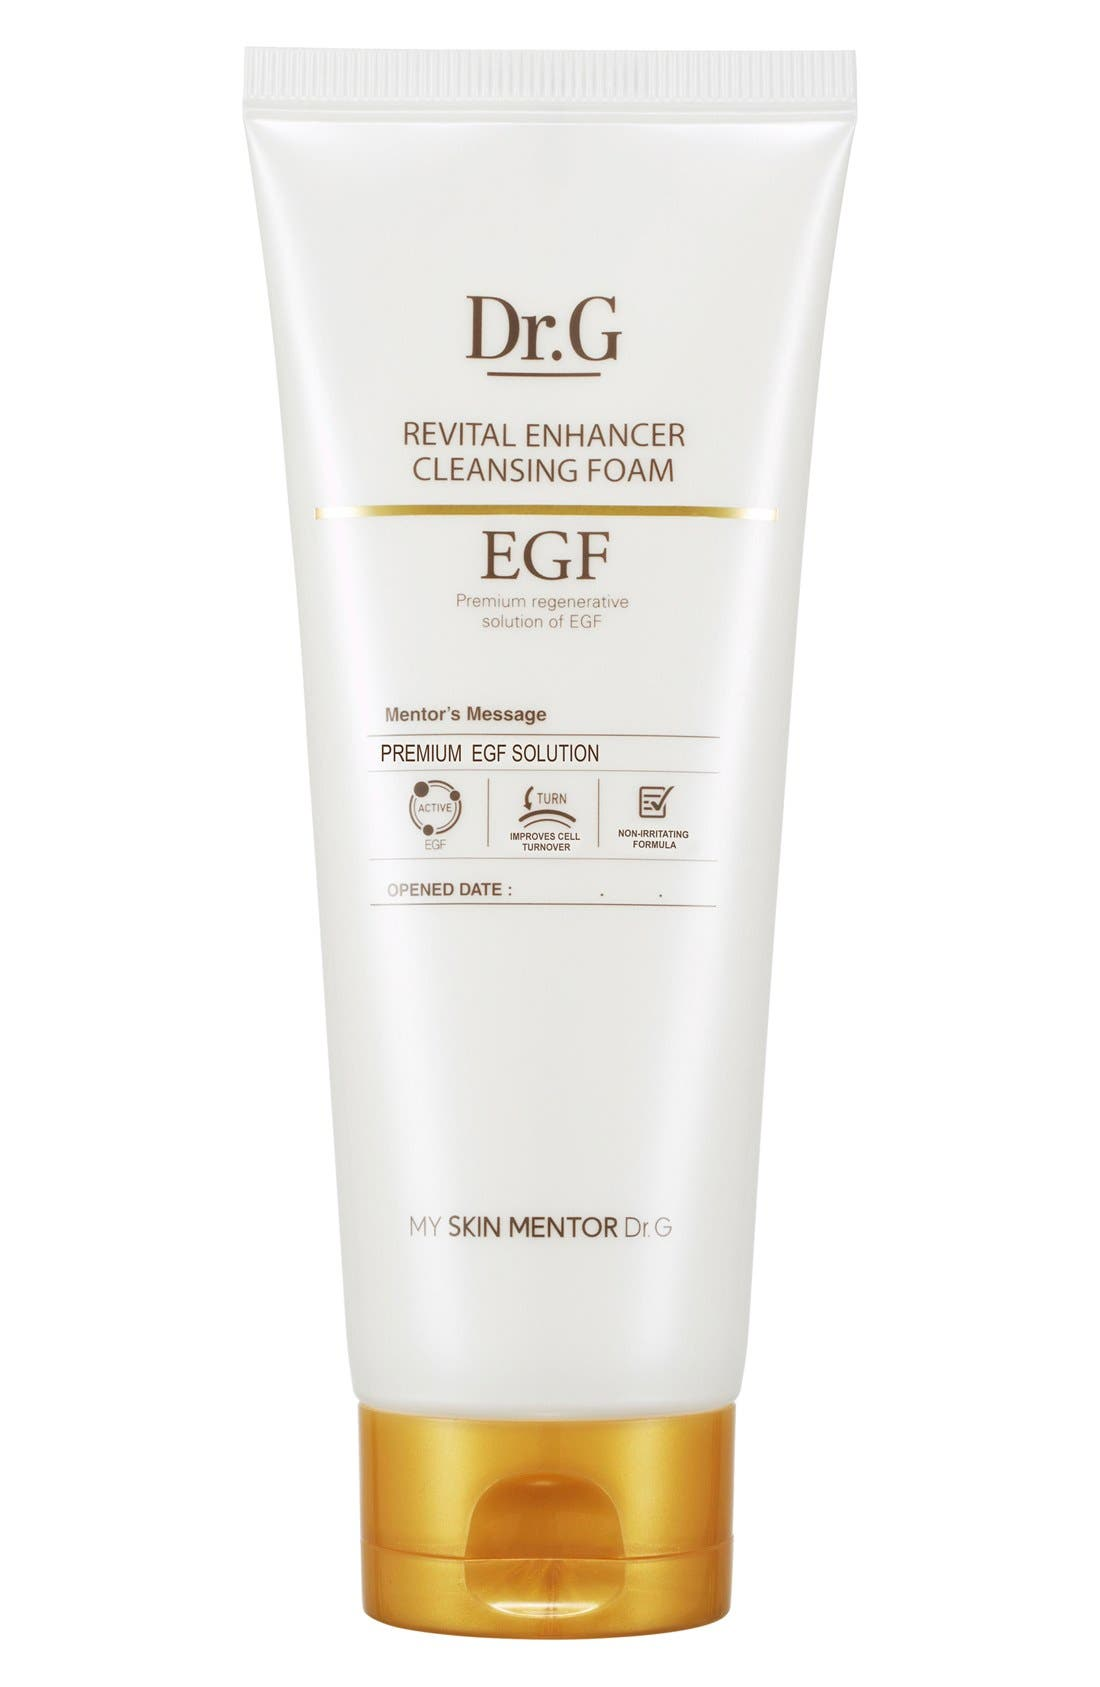 My Skin Mentor Dr. G Beauty Revital Enhancer Cleansing Foam